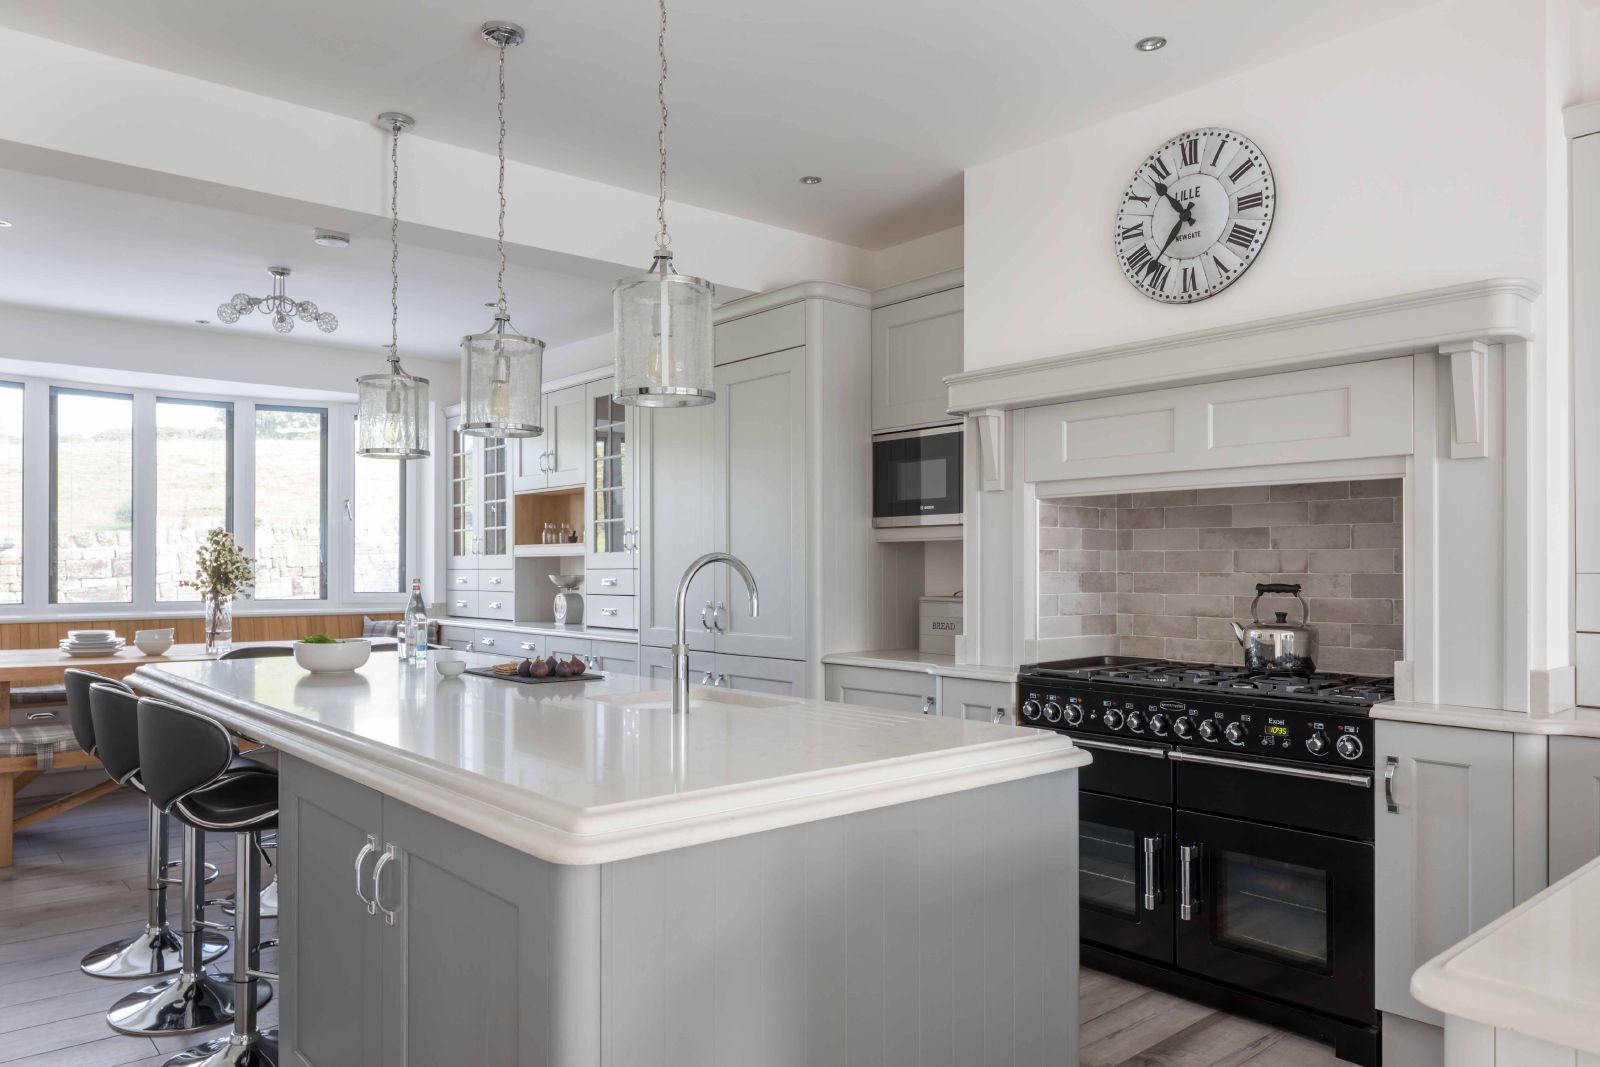 Masterclass-Kitchens-Grey-Shaker-Kitchen